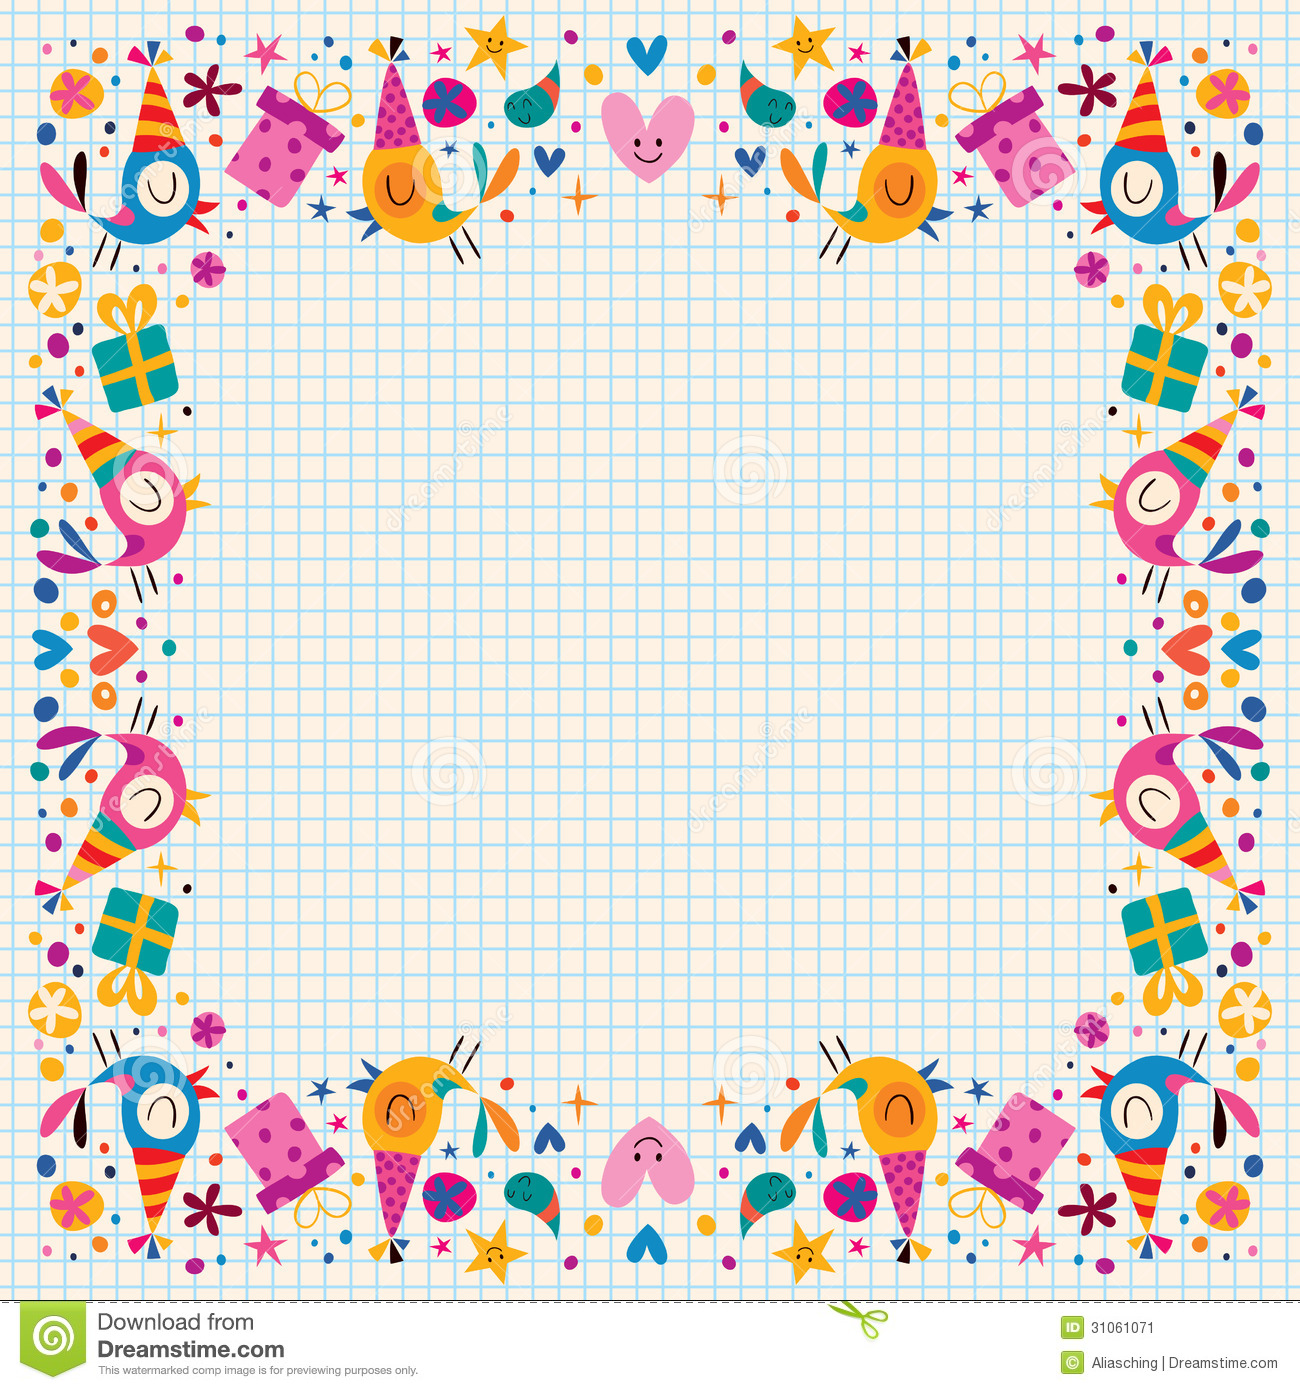 Birthday Decorative Border Stock Image   Image  31061071